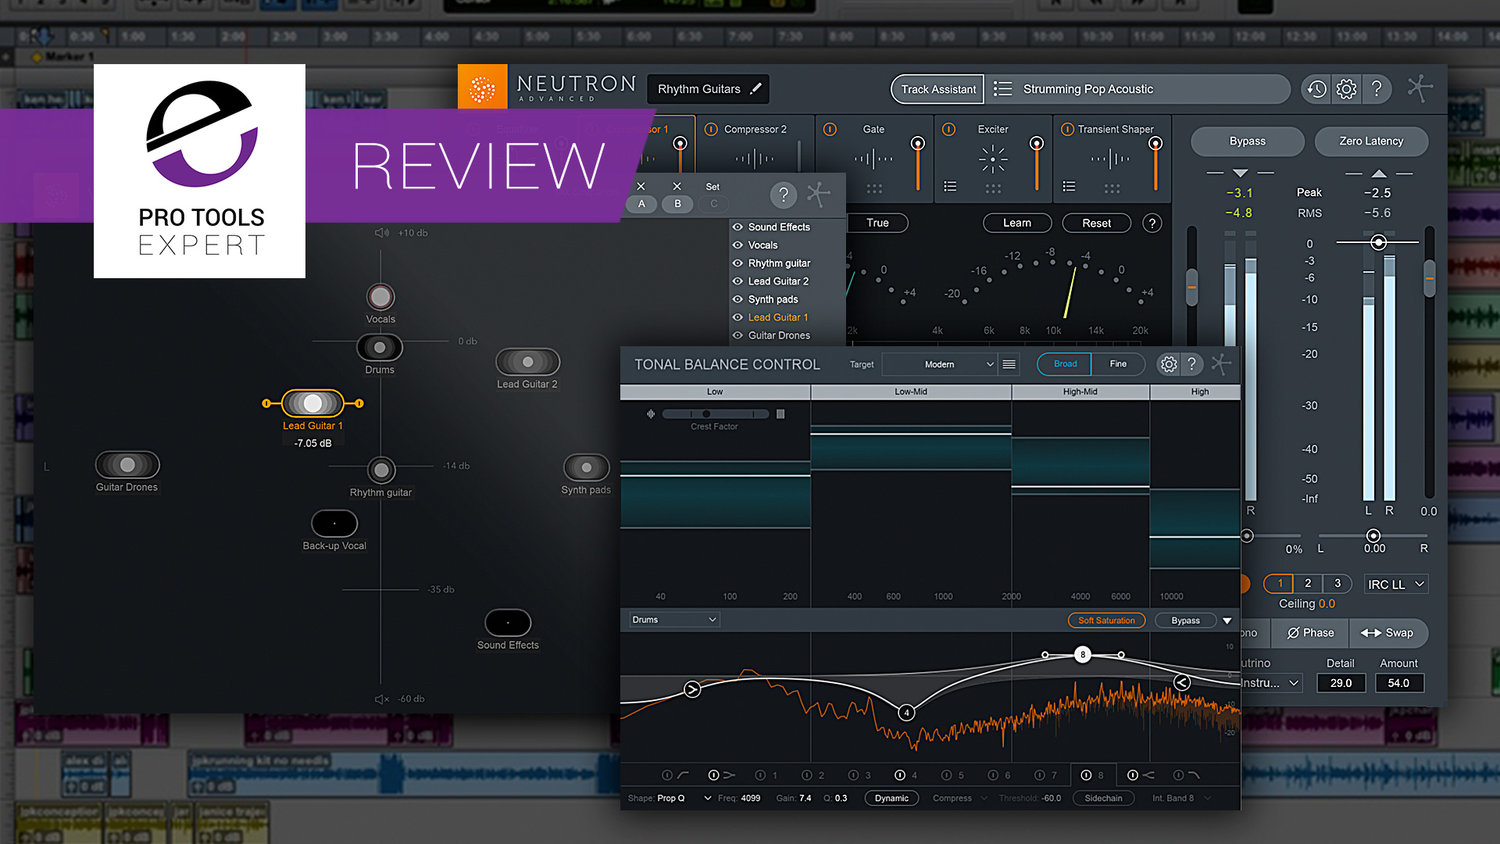 Review - iZotope Neutron 2 Track Assistant, Tonal Balance